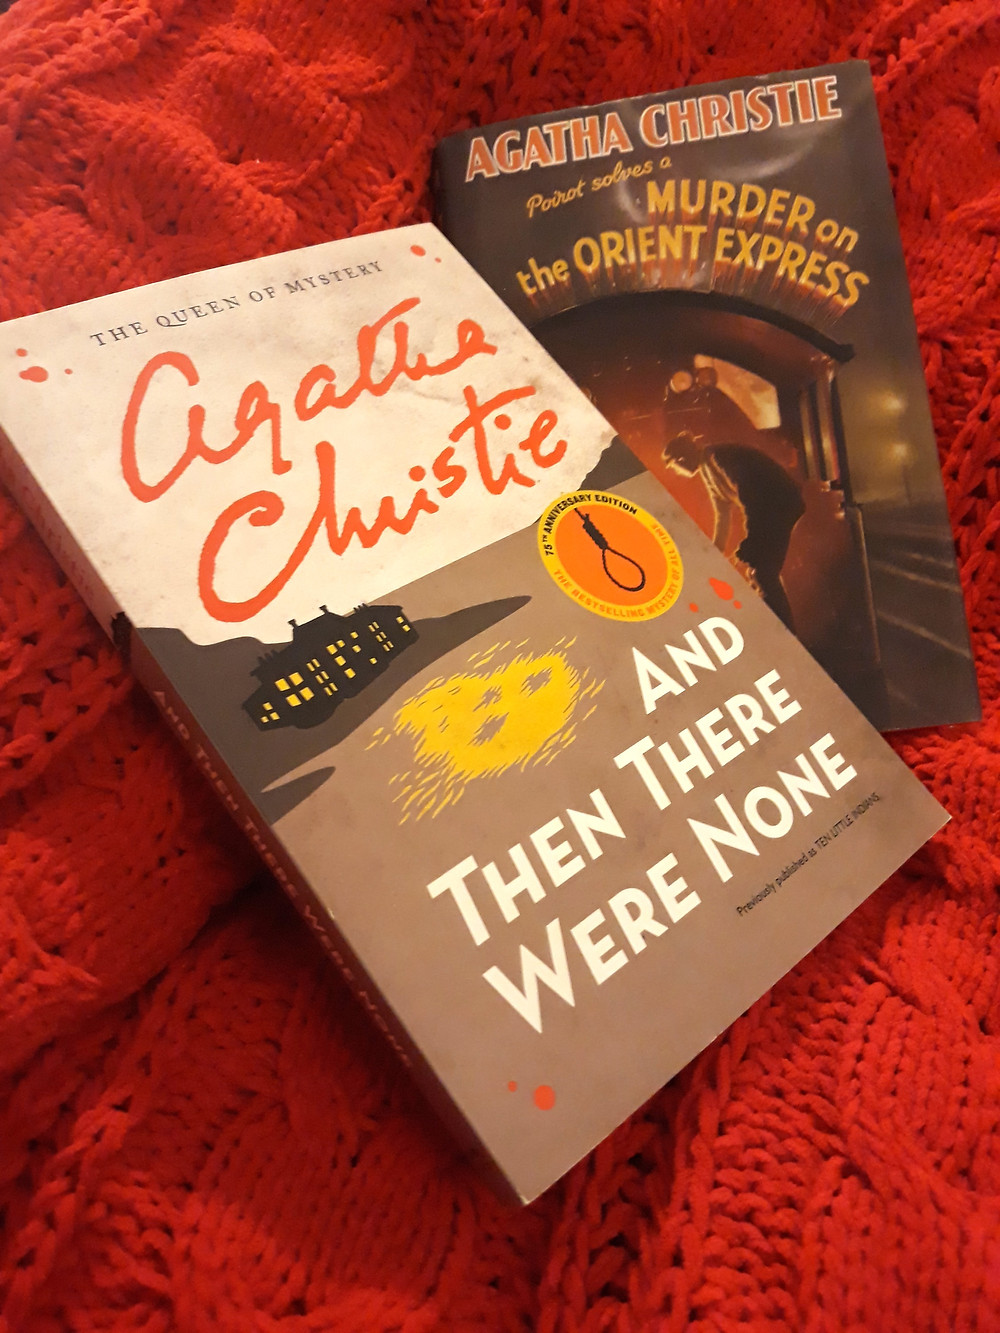 A paperback copy of And Then There Were None in front of a hardback copy of Murder on the Orient Express. They are both on a red background.